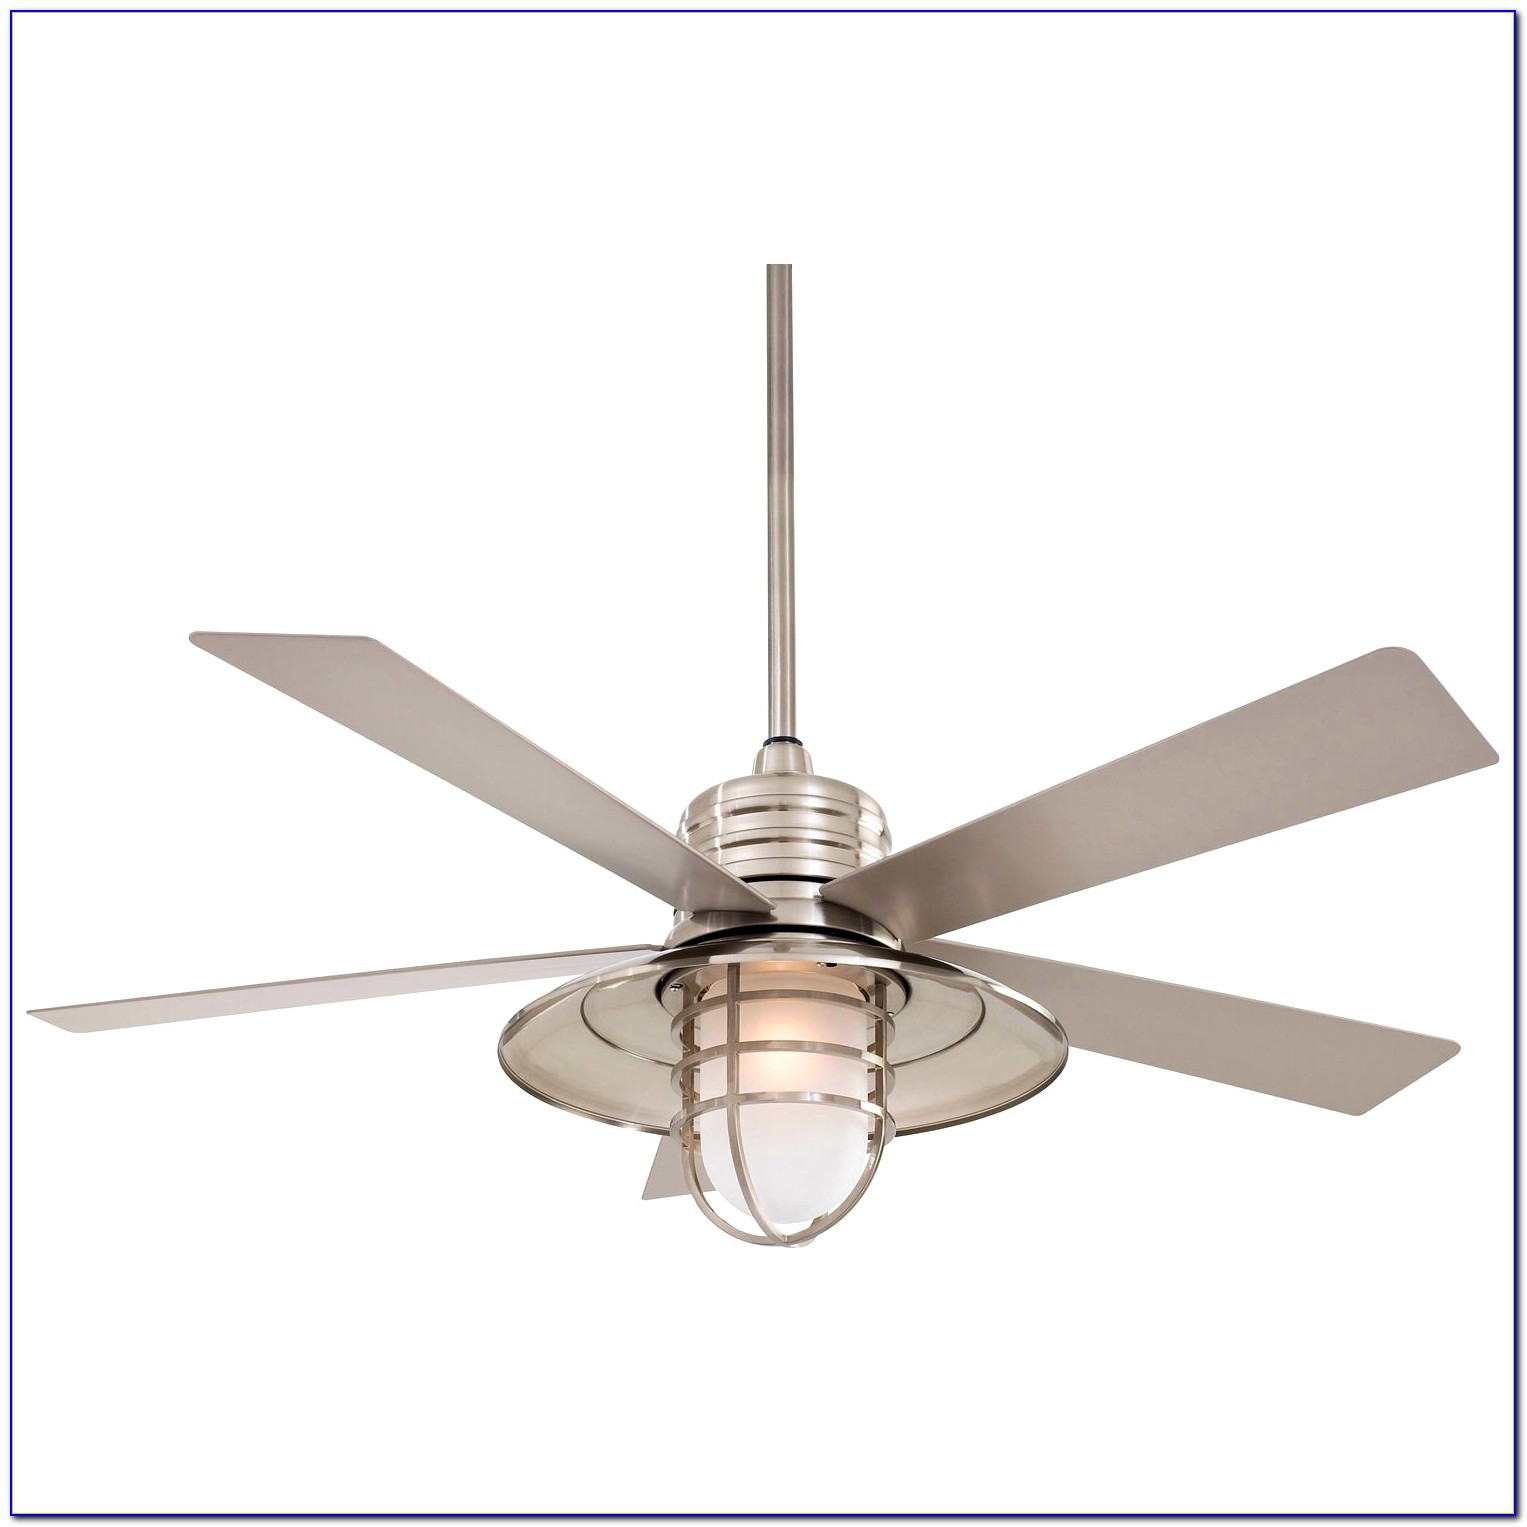 Bedroom : Divine Kichler Inch Ceiling Fan Five Blades And Light Throughout Outdoor Ceiling Fan With Light And Remote